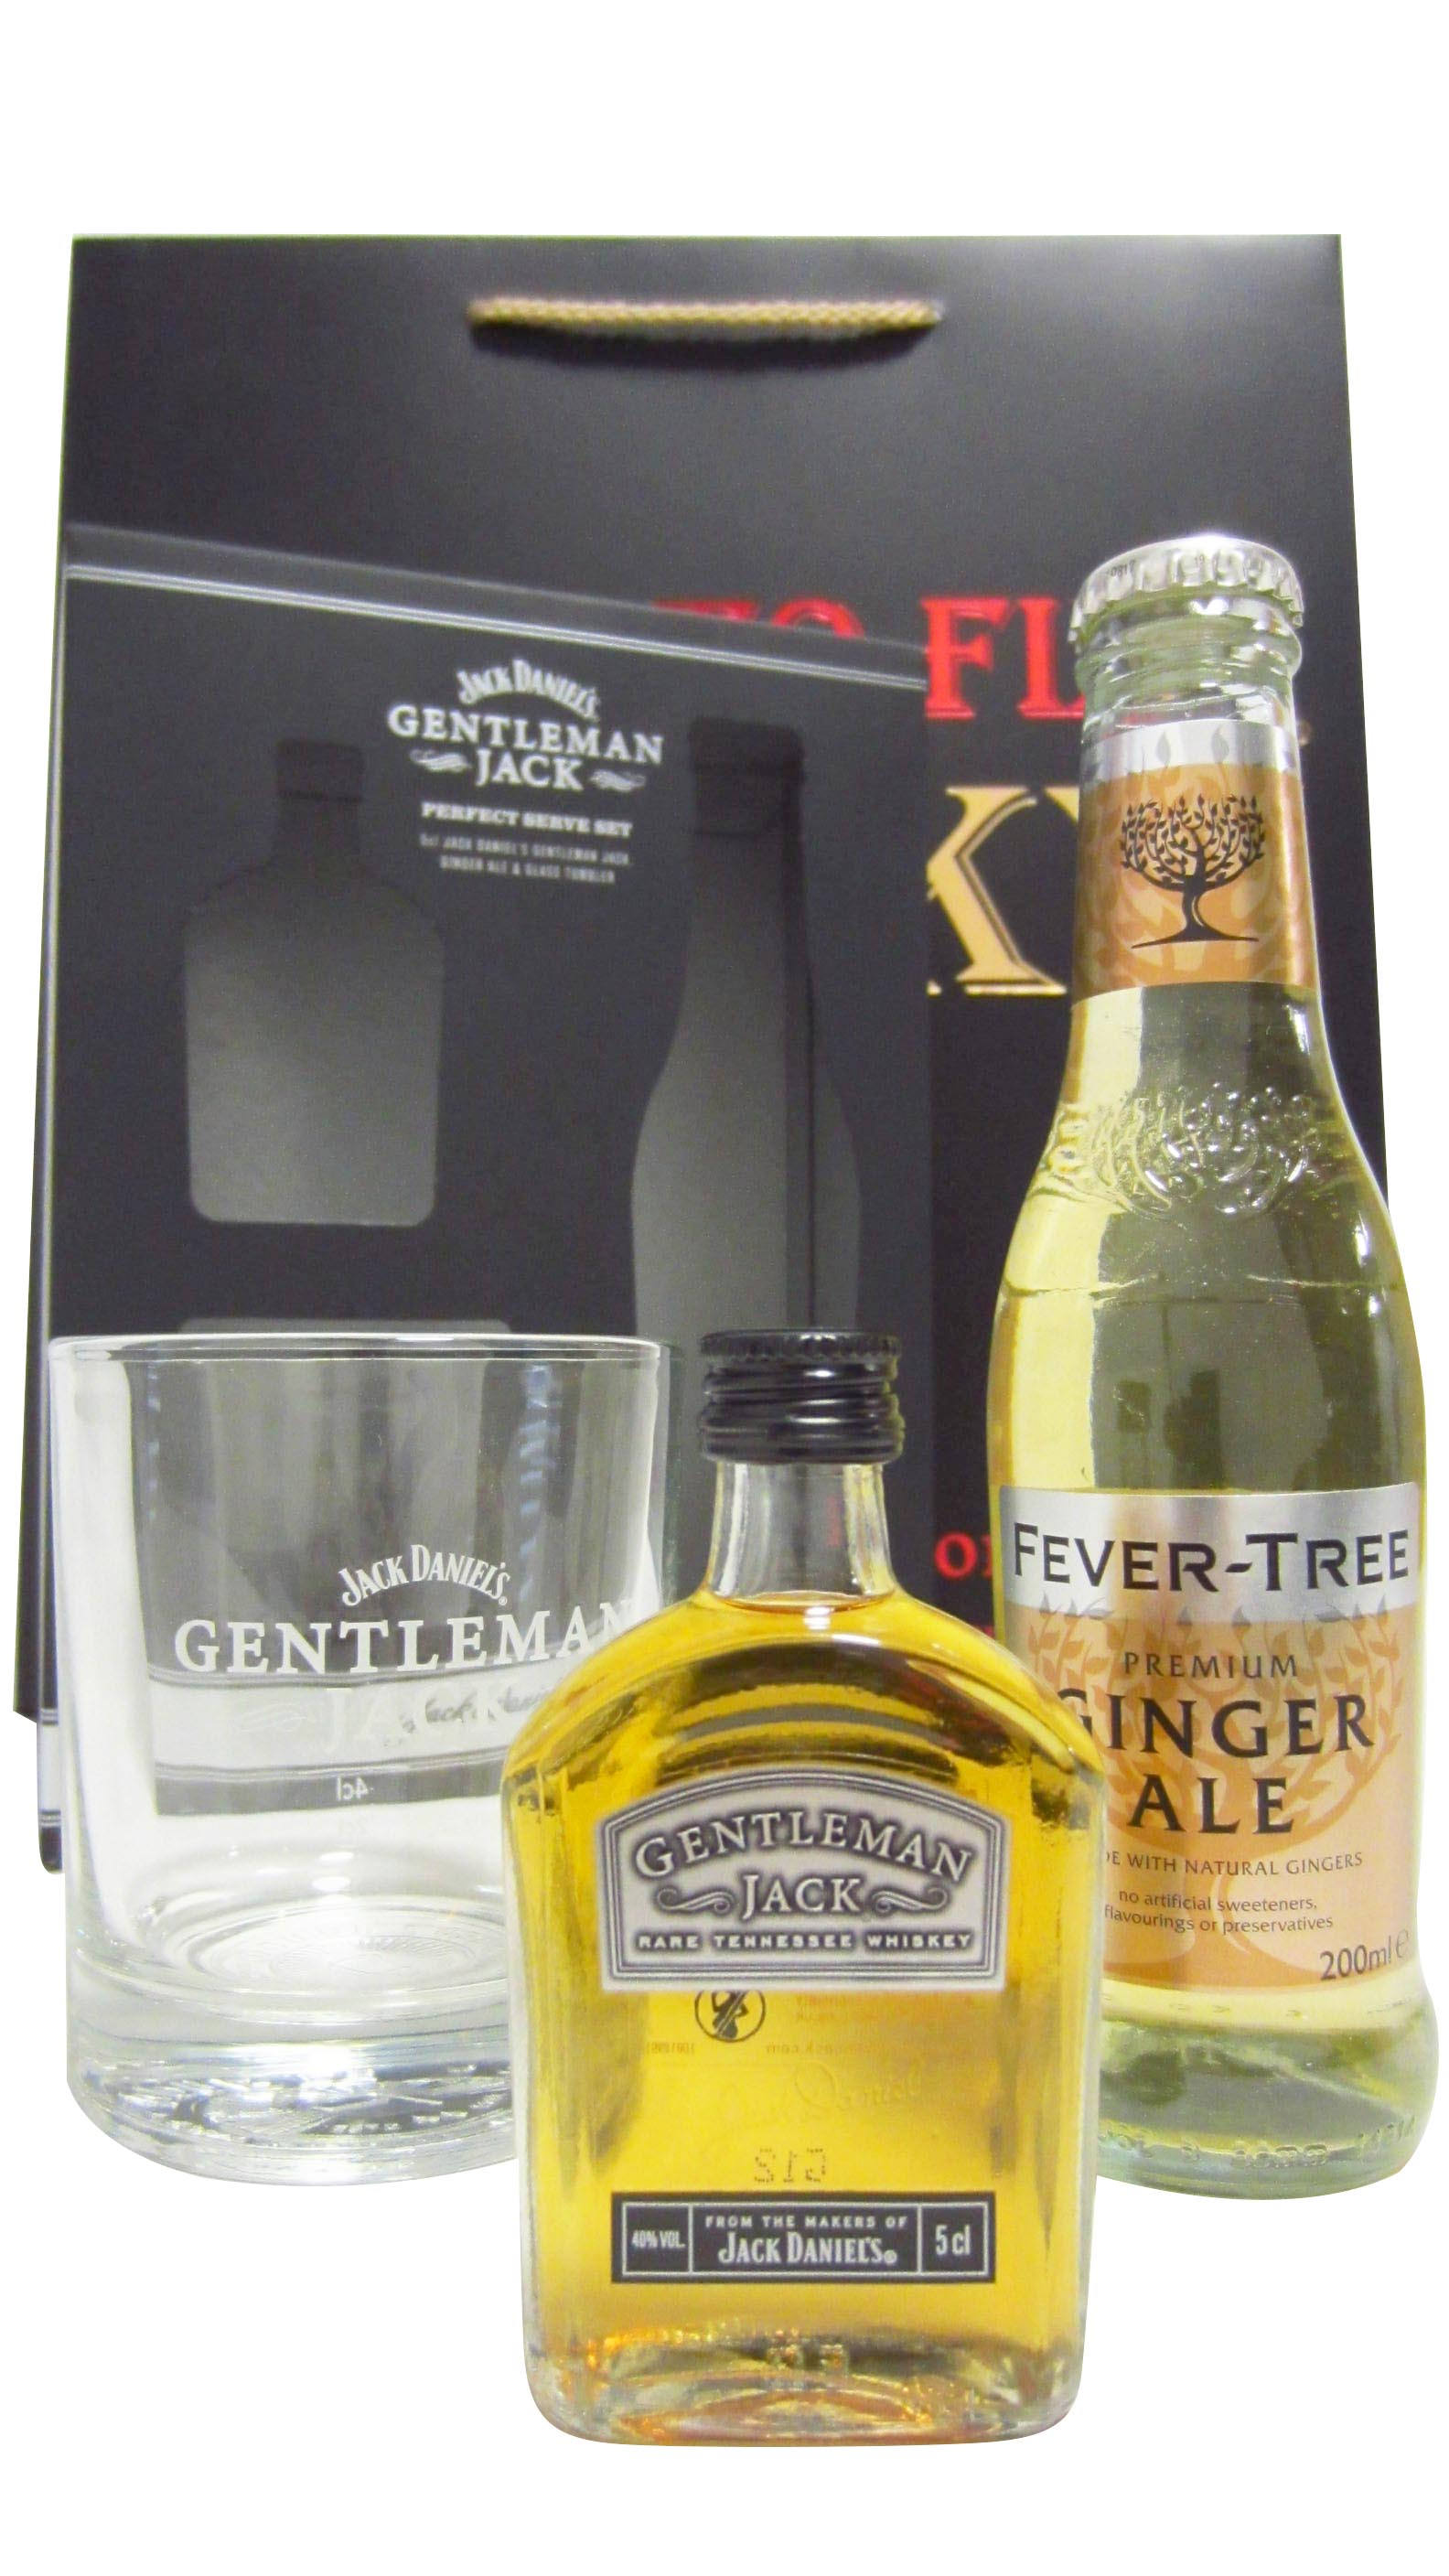 Jack Daniels Gentleman Jack Fever Tree Ginger Ale & Glass Gift Set Hard To Find Whisky Edition 50ml, whiskey